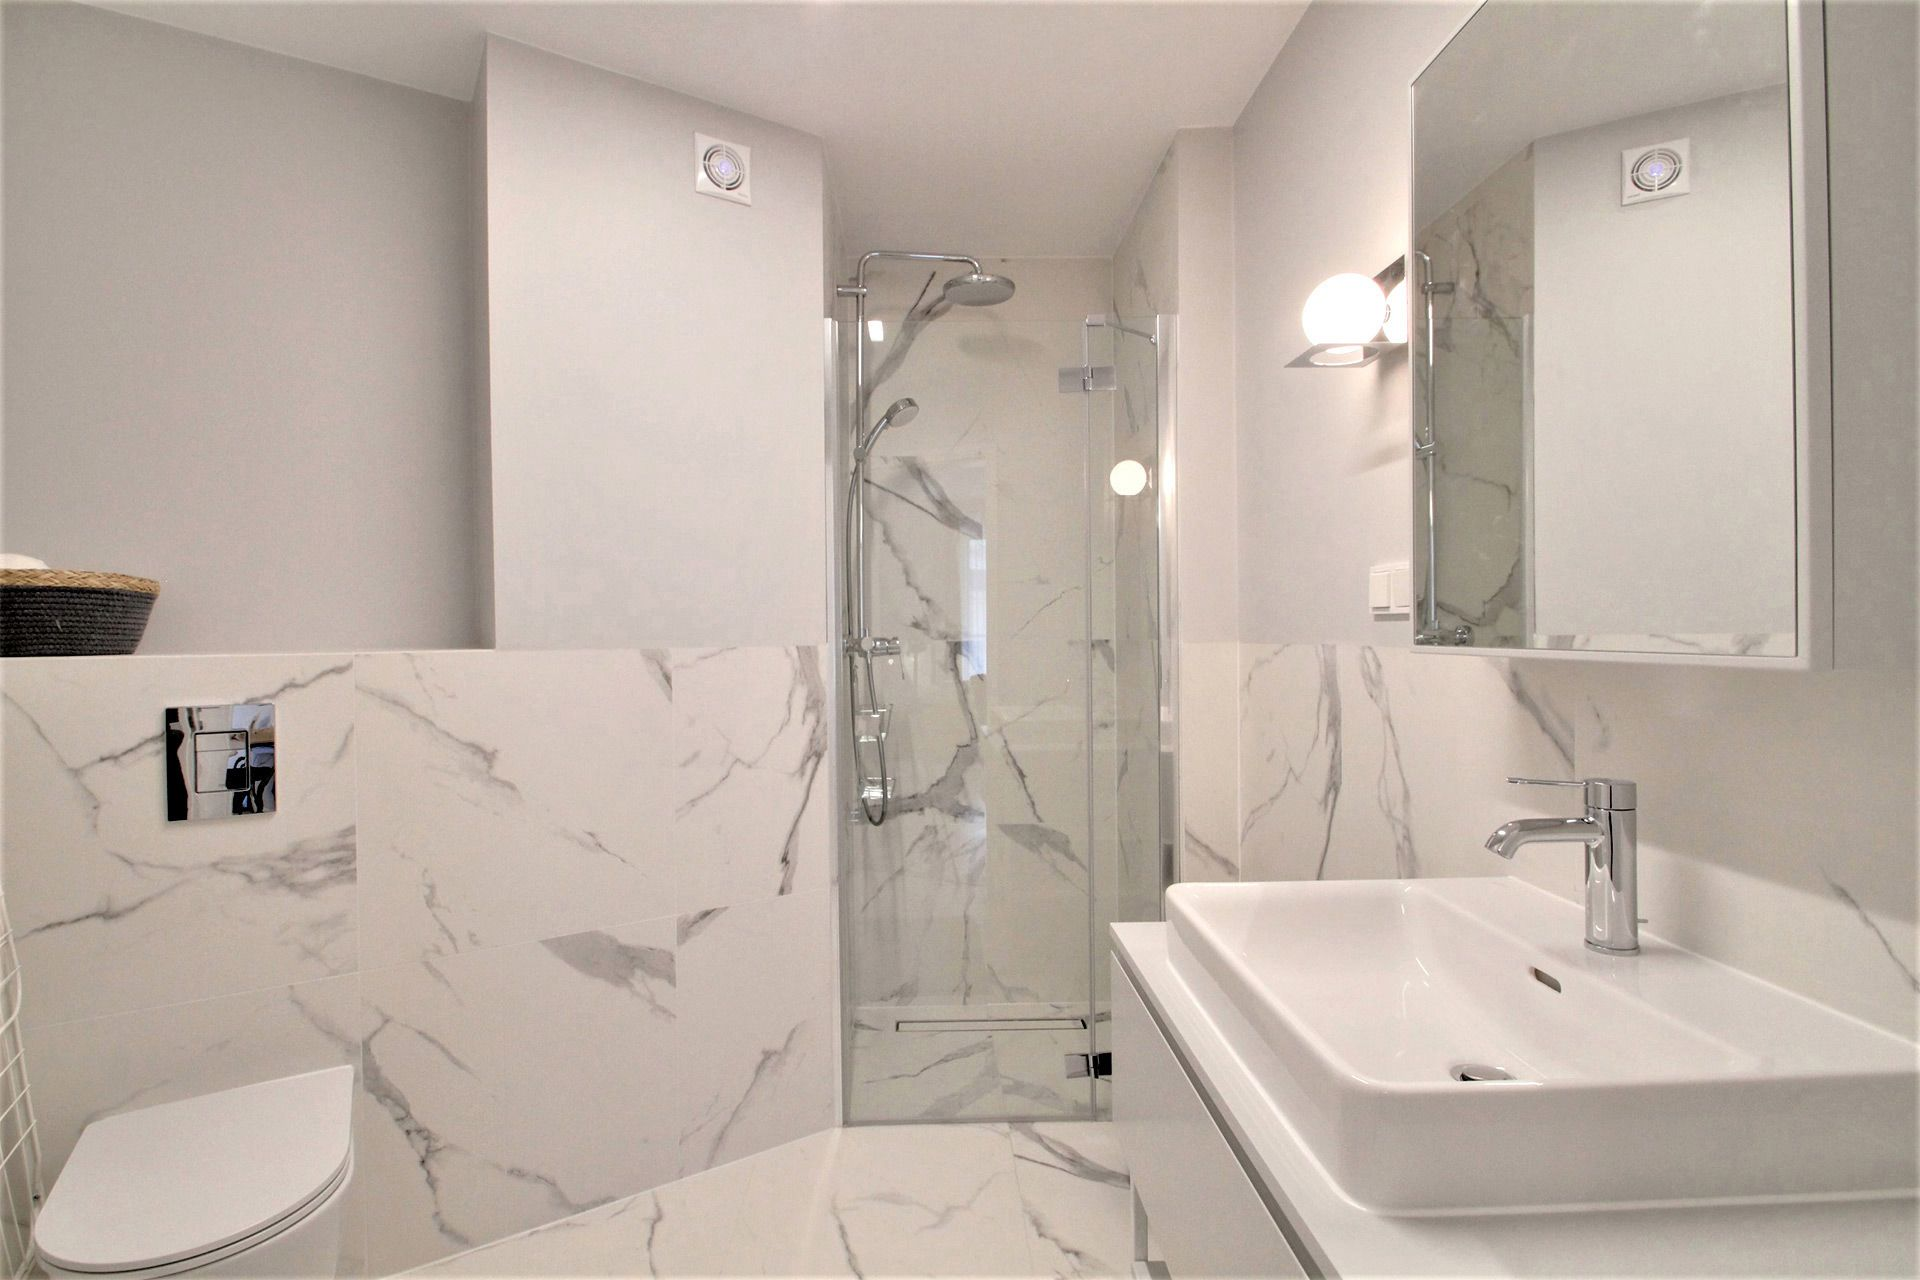 Studio - Medium apartment to rent in Warsaw UPR-A-027-2